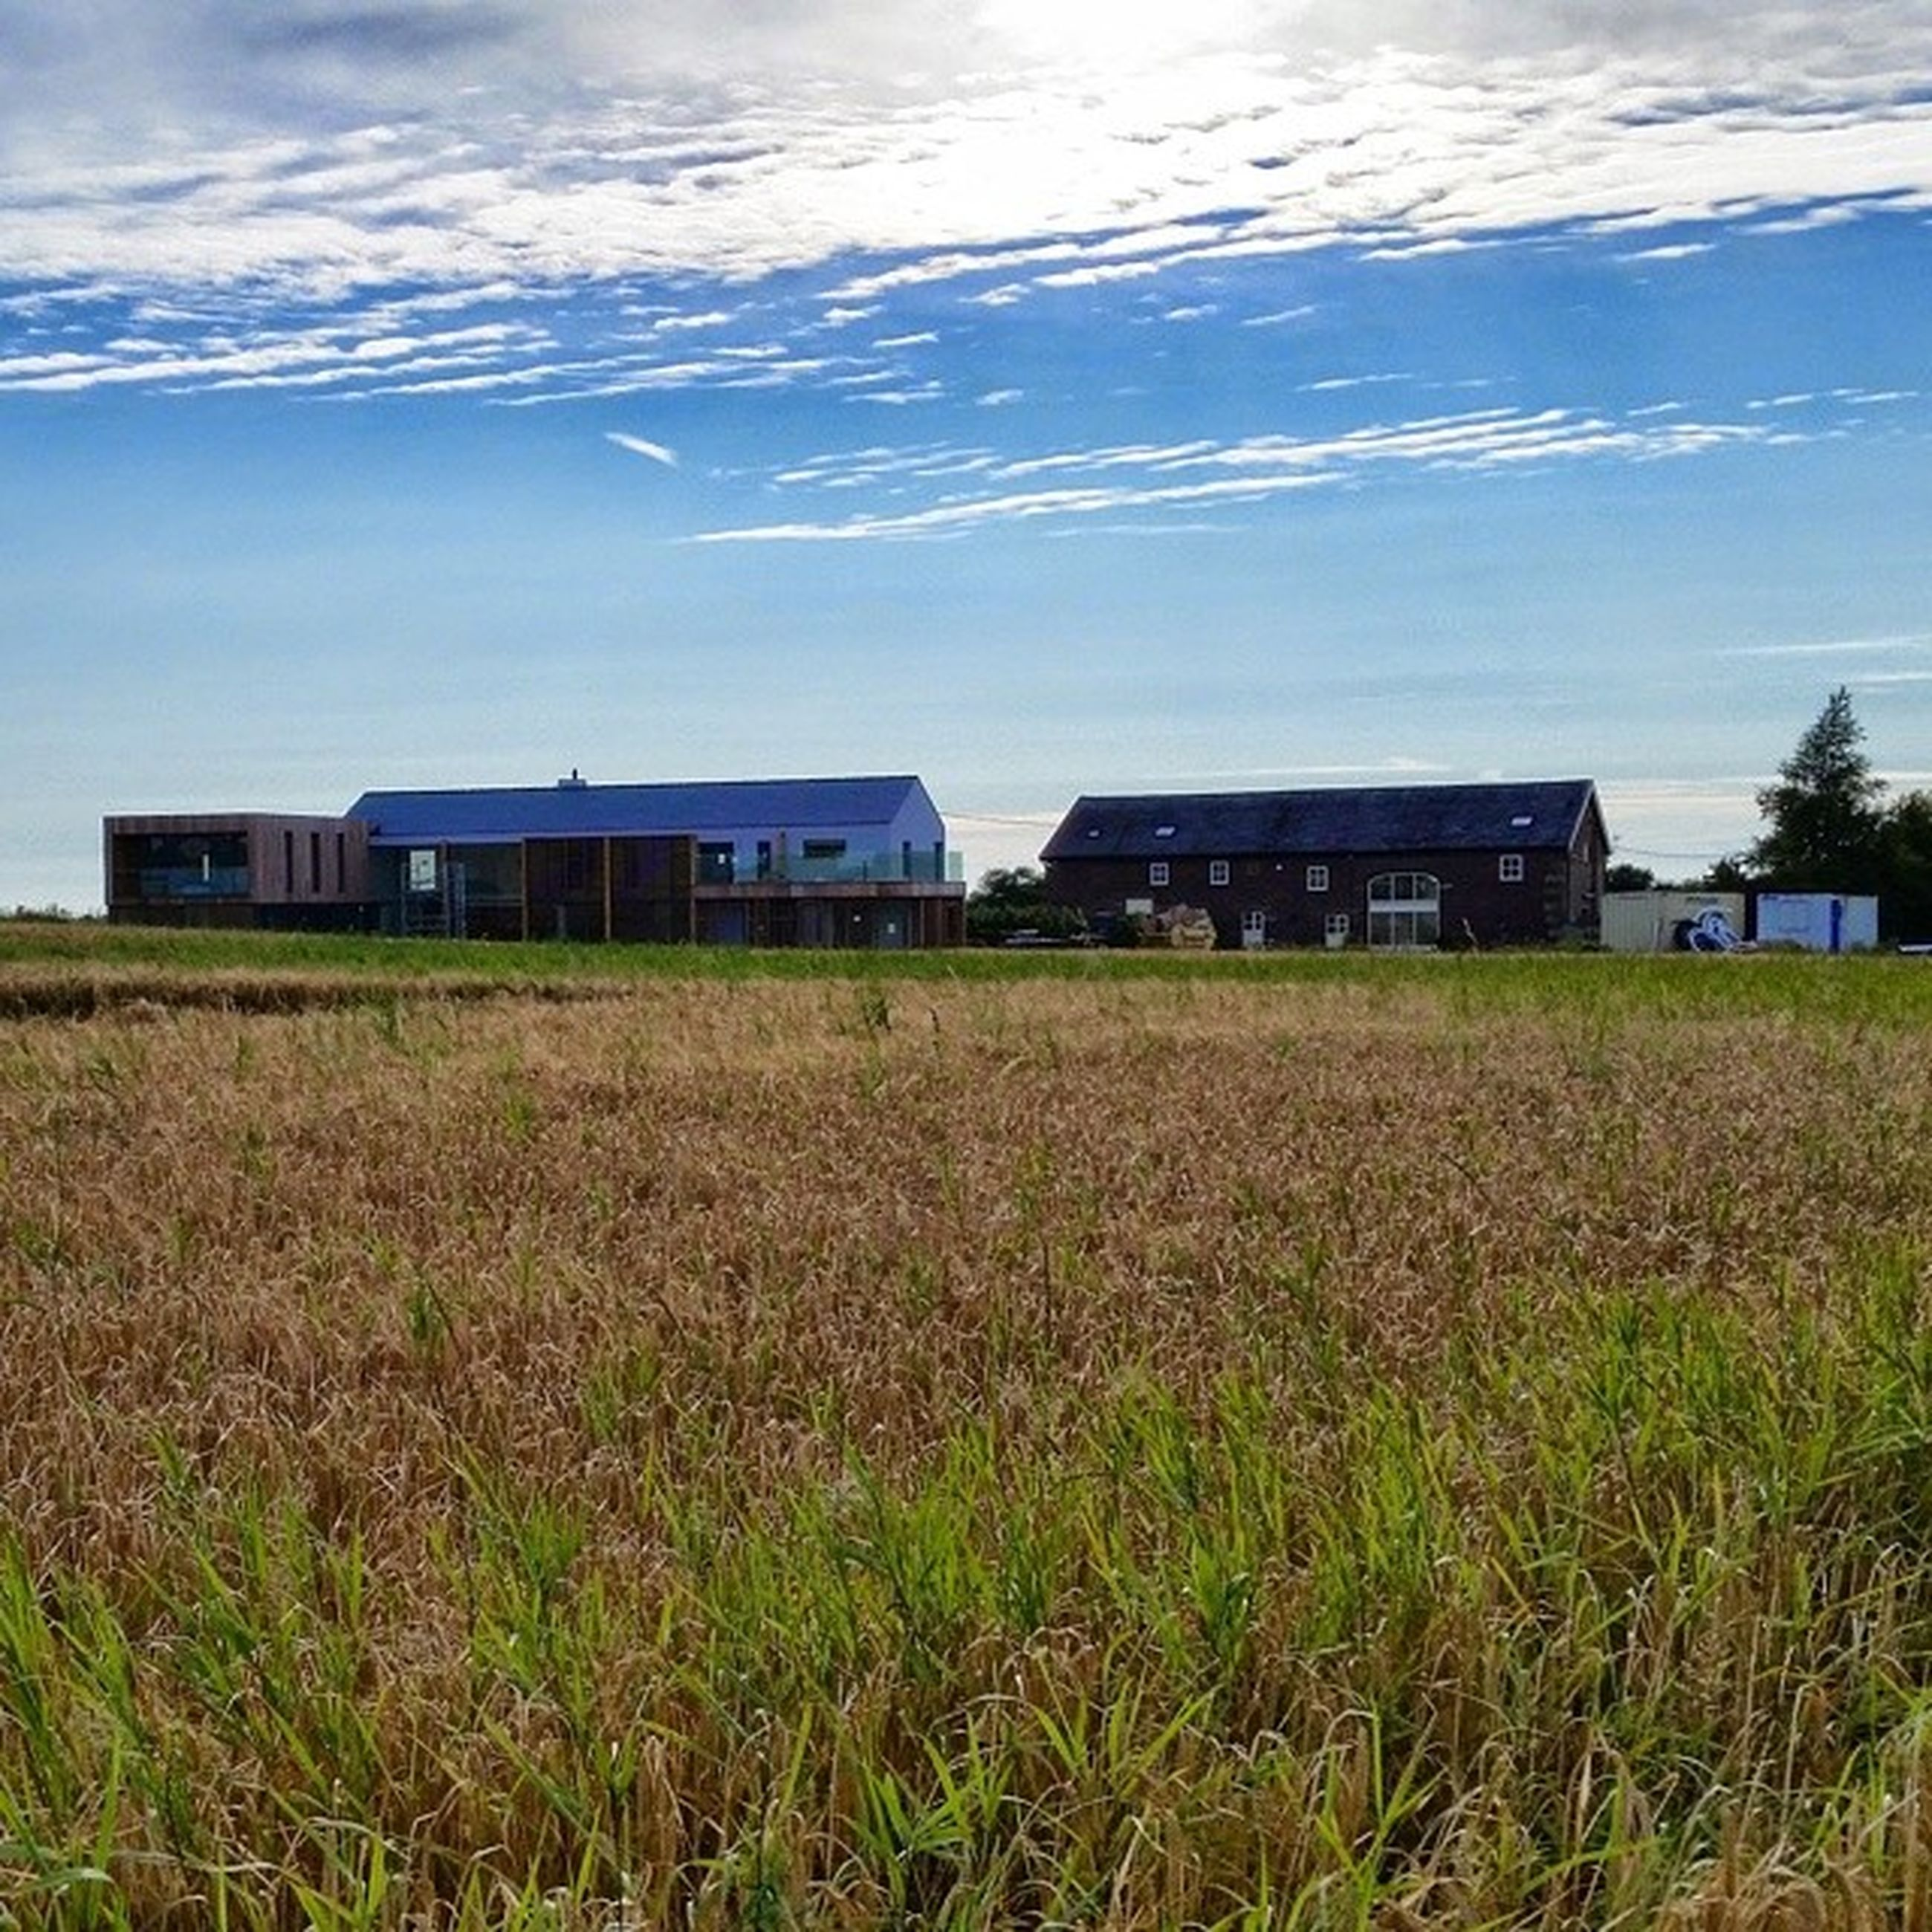 building exterior, architecture, built structure, grass, sky, field, house, residential structure, rural scene, cloud - sky, landscape, grassy, cloud, residential building, nature, day, farm, growth, agriculture, outdoors